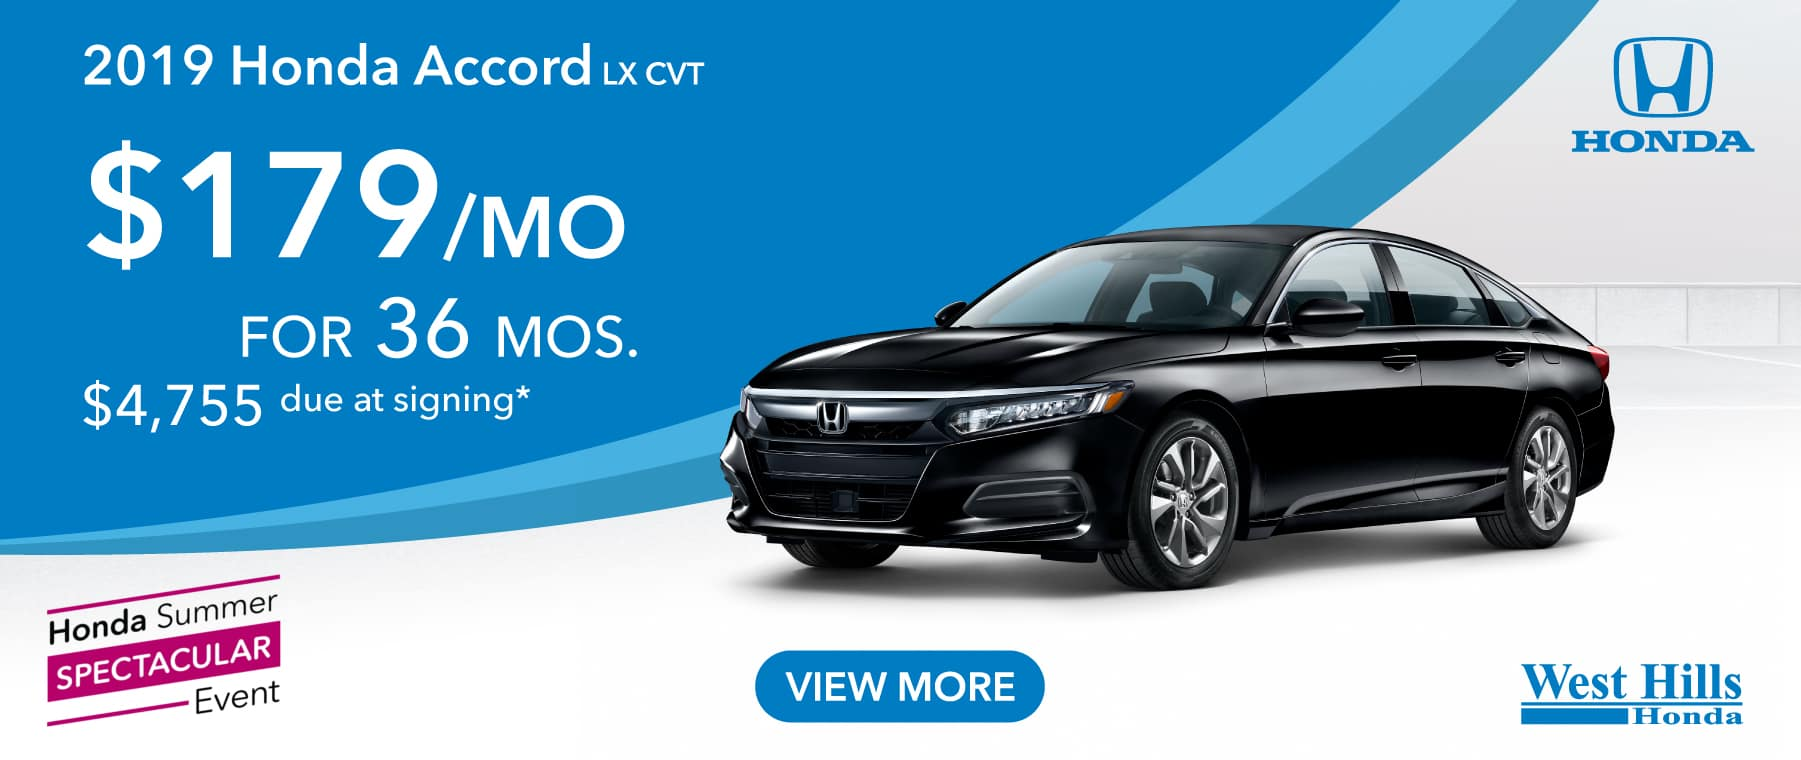 2019 HONDA ACCORD LX CVT  $179/mo. for 36 mos. $4,755 due at signing*    *Valid on 2019 HONDA ACCORD LX CVT. $179 per mo. for 36 months. Lease with $4,755 due at signing; includes a $595 acquisition fee. Valid on VIN: 1HGCV1F13KA015966, 1HGCV1F14KA035756, 1HGCV1F1XKA012868. MSRP $24,615. No Security deposit required. Subject to credit approval. 36 monthly payments required. Not all lessees will qualify for lowest payment through participating lender. Residency restrictions apply. Lessee responsible for maintenance, excessive wear/tear and mileage over 12,000 miles per year at $0.15/mile. Option to purchase at lease end. Excludes state and local taxes, tags, registration and title, insurance and dealer charges. A negotiable dealer documentary service fee of up to $150 may be added to the sale price or capitalized cost. Offer expires 9/3/2019.